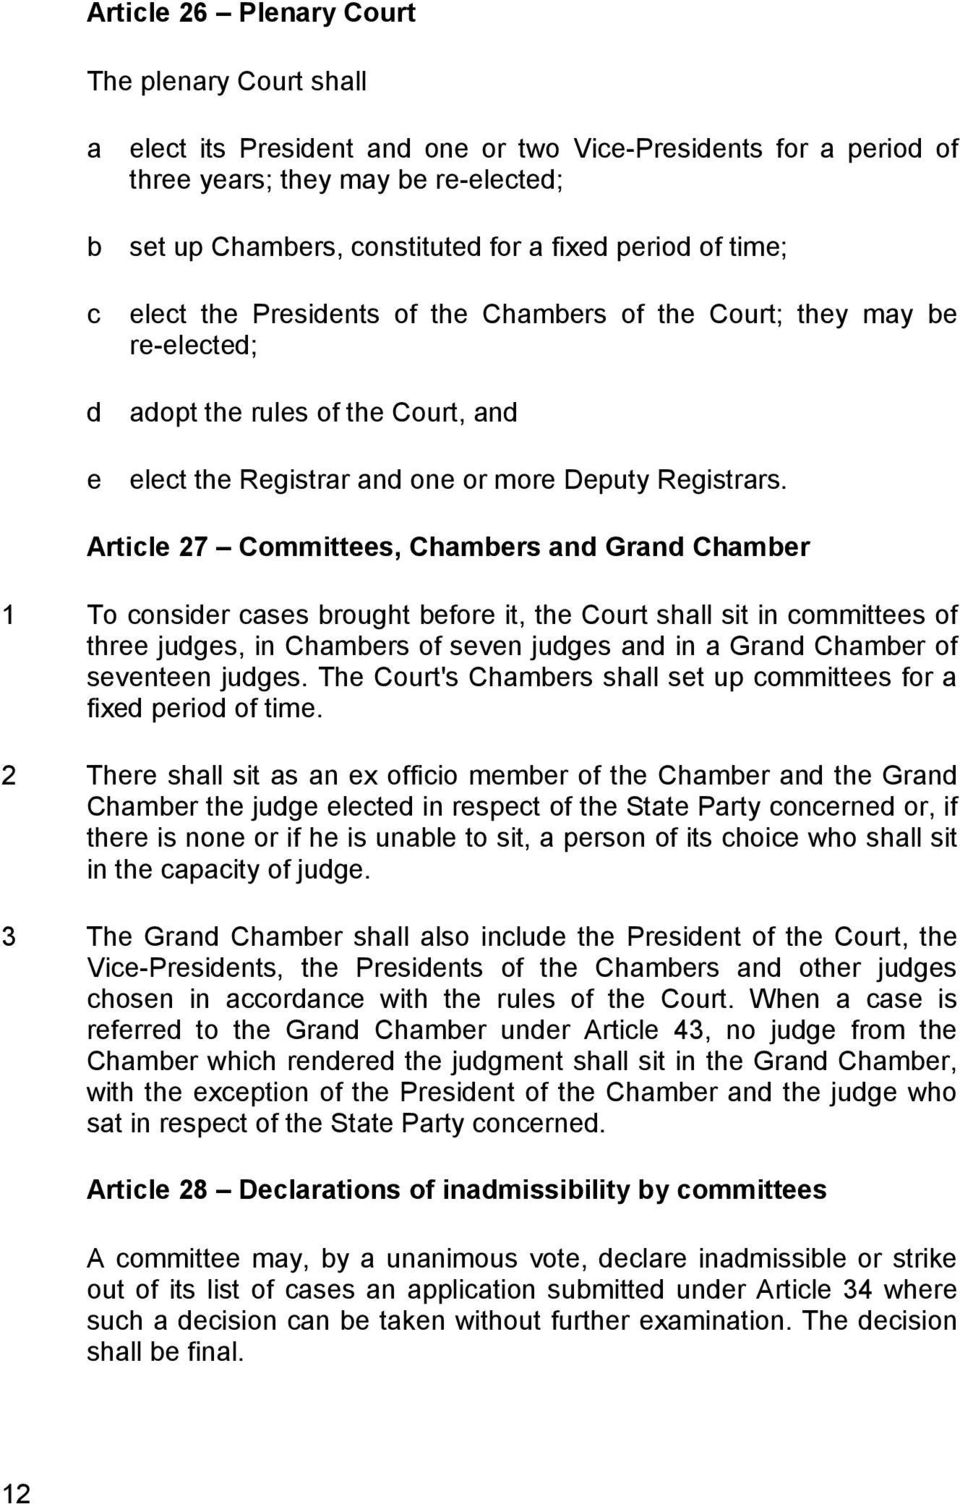 Article 27 Committees, Chambers and Grand Chamber 1 To consider cases brought before it, the Court shall sit in committees of three judges, in Chambers of seven judges and in a Grand Chamber of